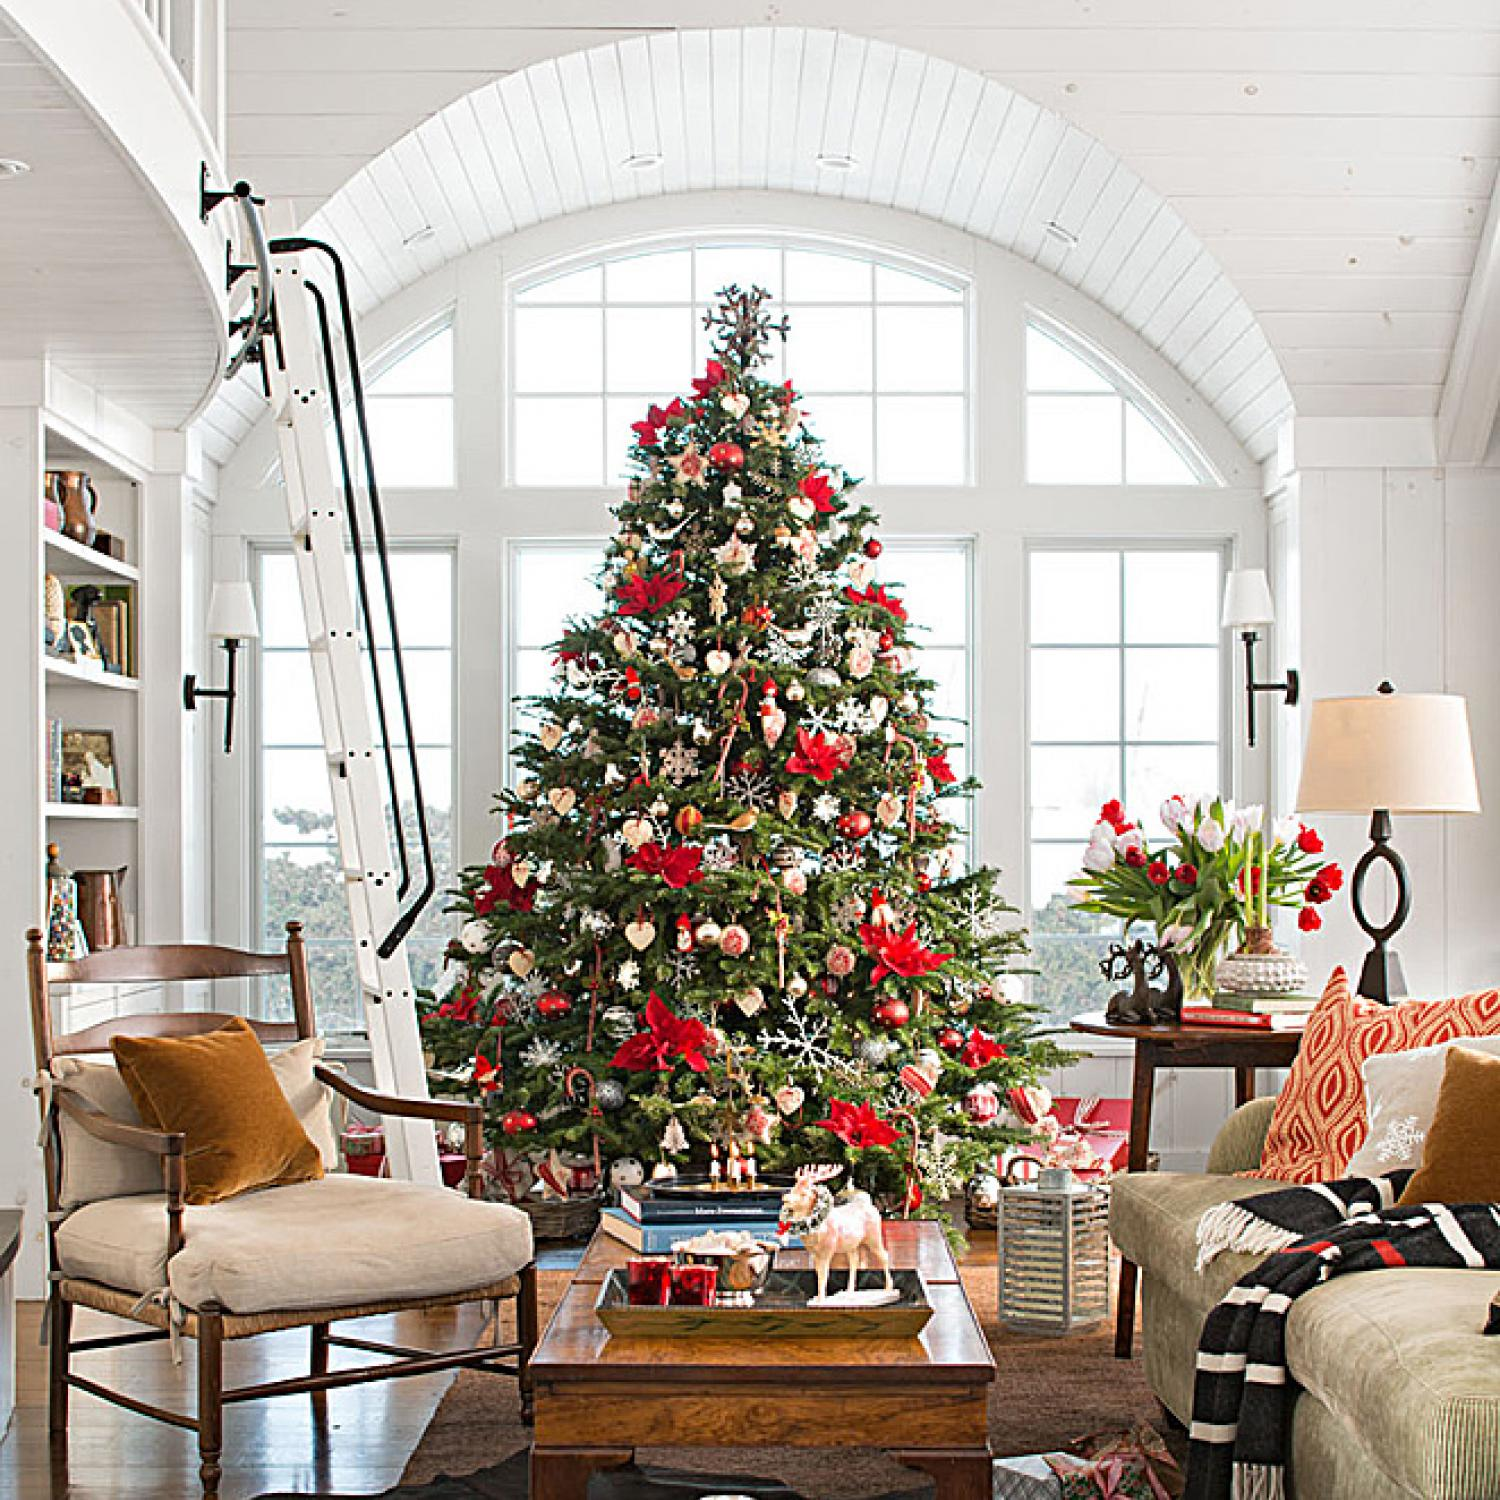 Little Decor Ideas To Make At Home: Snowy Vermont Home Ready For Christmas